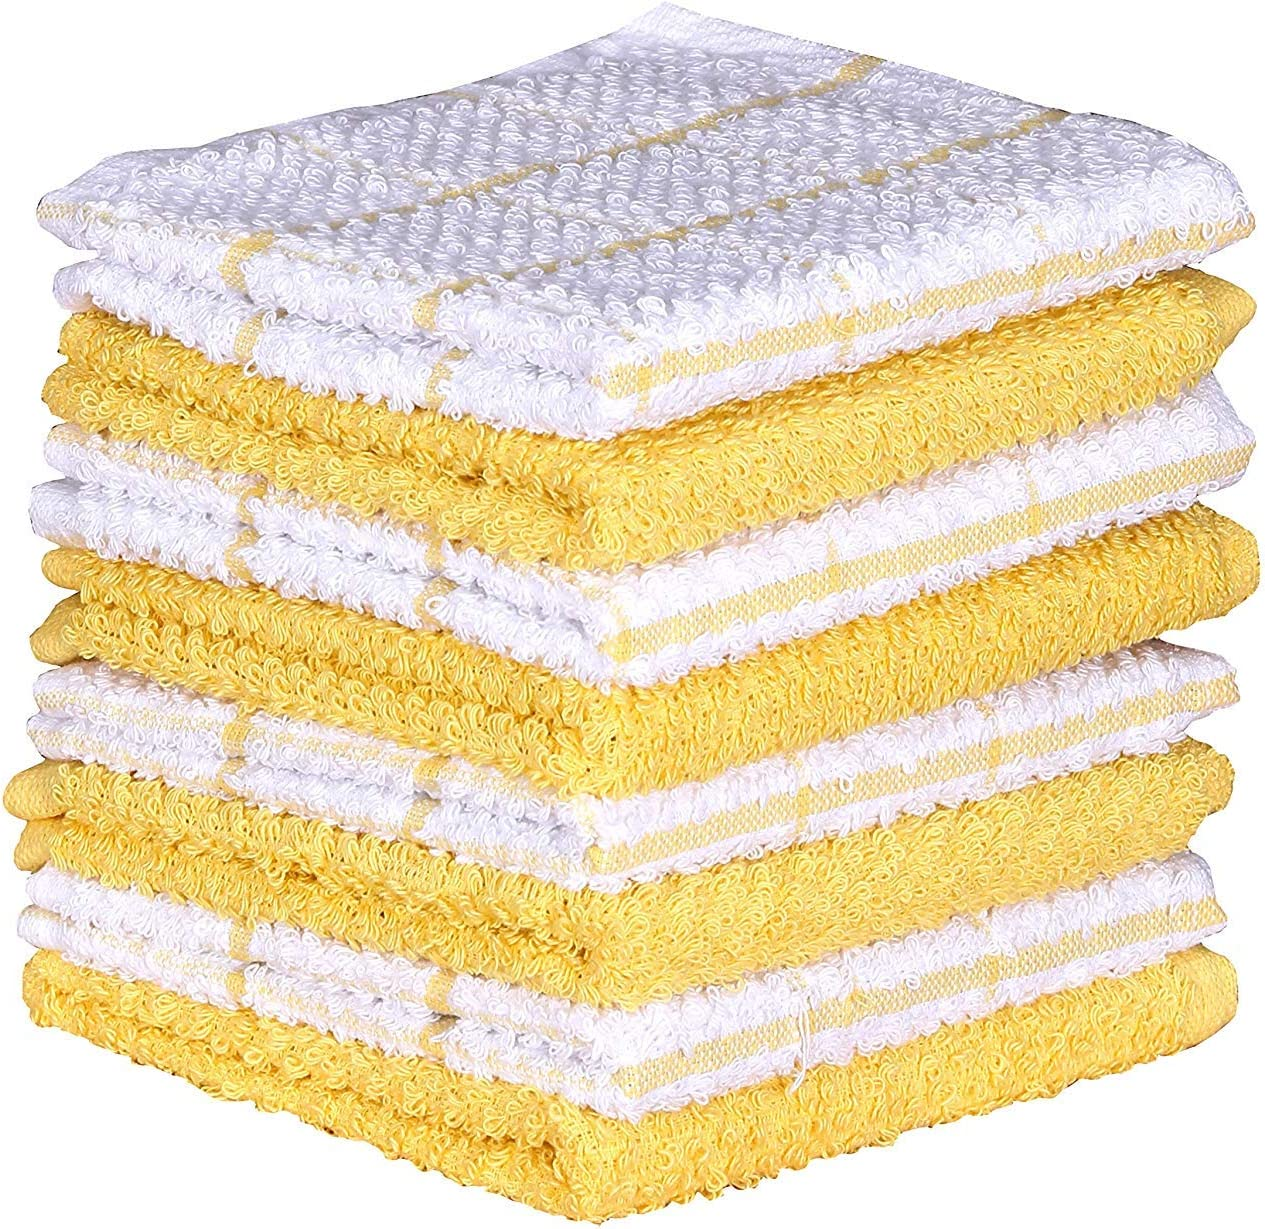 Amour Infini Cotton Terry Kitchen Dish Cloths Set of 8 (12 x 12 Inches), Yellow